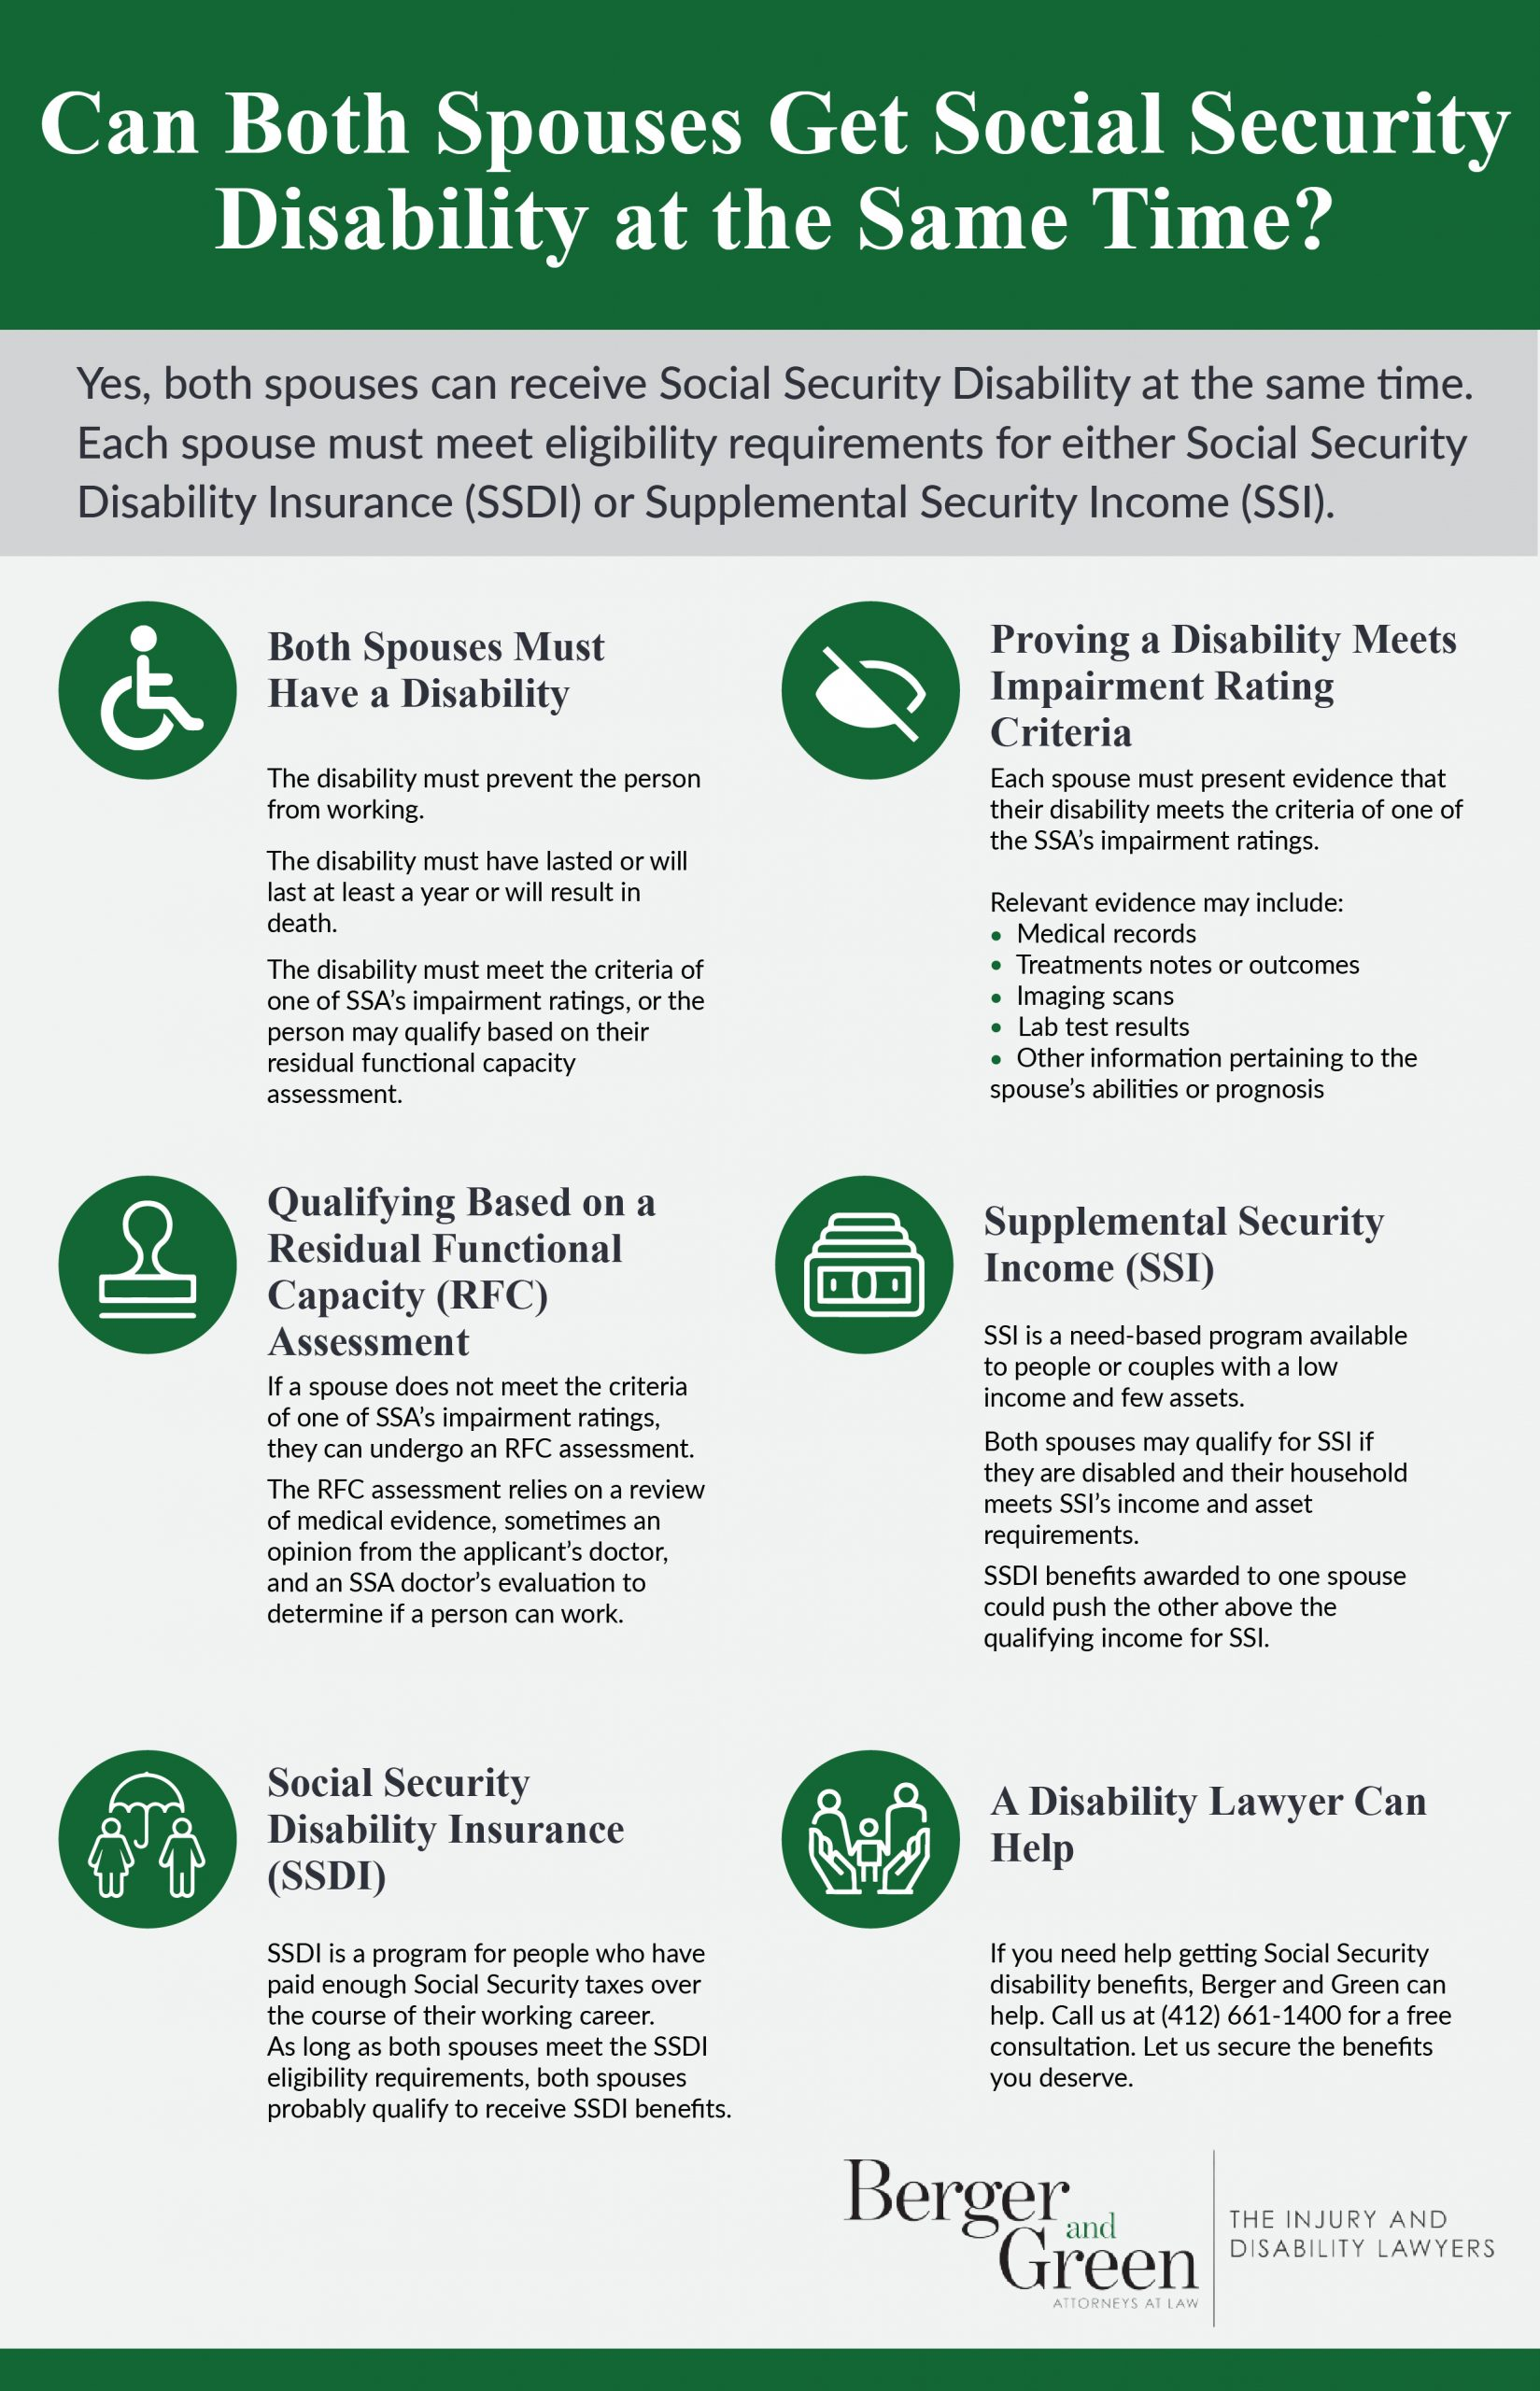 Can Both Spouses Get Social Security Disability at the Same Time?